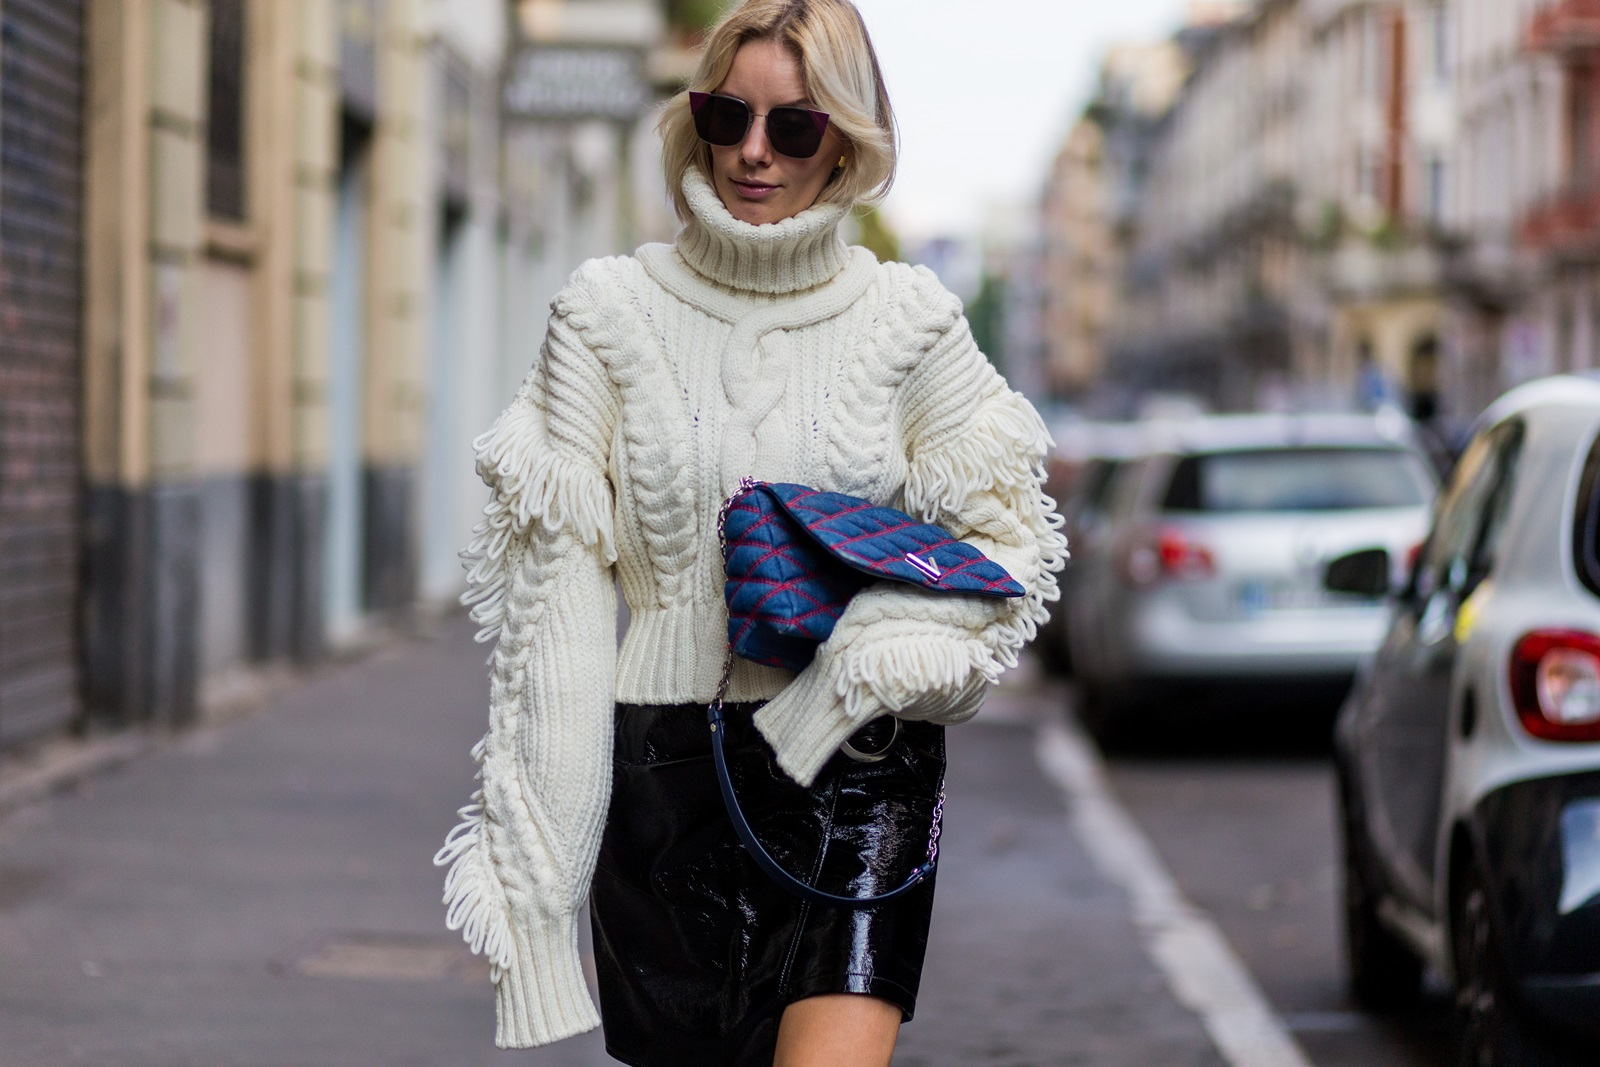 MILAN, ITALY - SEPTEMBER 21: Lisa Hahnbueck wearing a OffWhite Knit Turtle Neck, Oversized Sleeves & Fringes, Mango Asymmetric Patent Leather Skirt with Belt, Louis Vuitton GO-14 PM Denim Bag, Fendi sunglasses is seen outside Alberta Ferretti during Milan Fashion Week Spring/Summer 2017 on September 21, 2016 in Milan, Italy. (Photo by Christian Vierig/Getty Images) *** Local Caption *** Lisa Hahnbueck